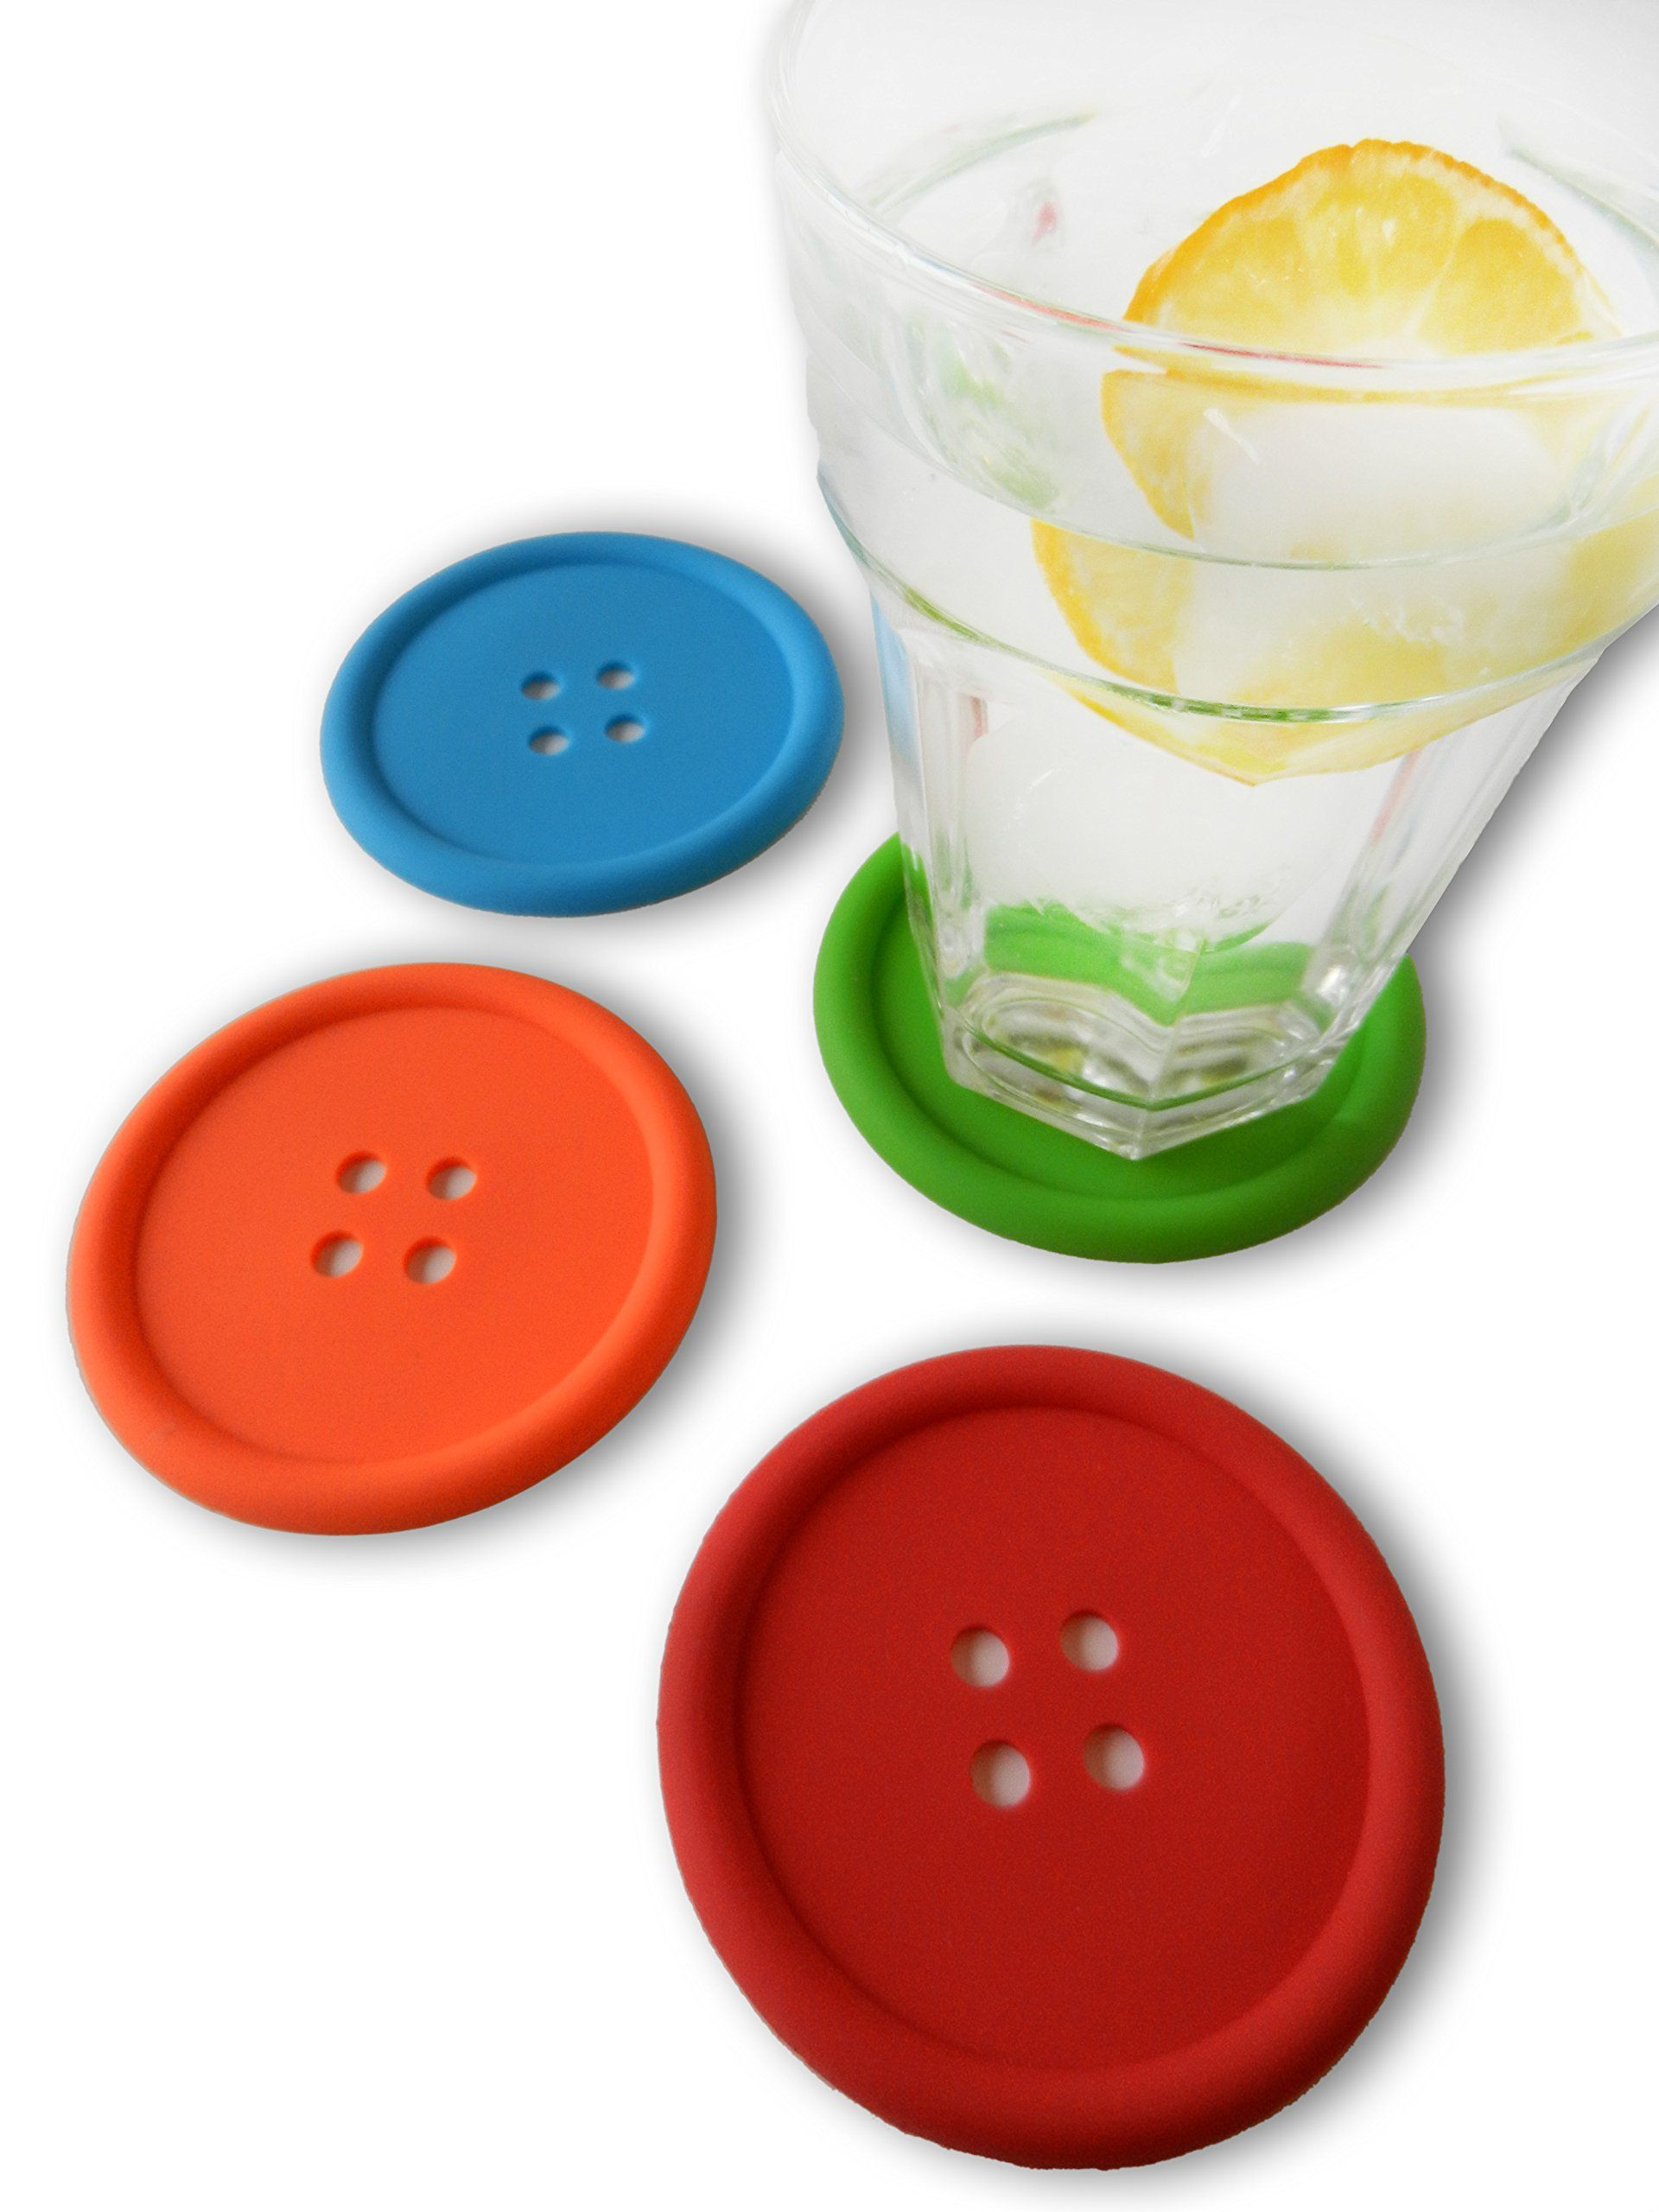 Coasters for drinks, set of 4, colorful table